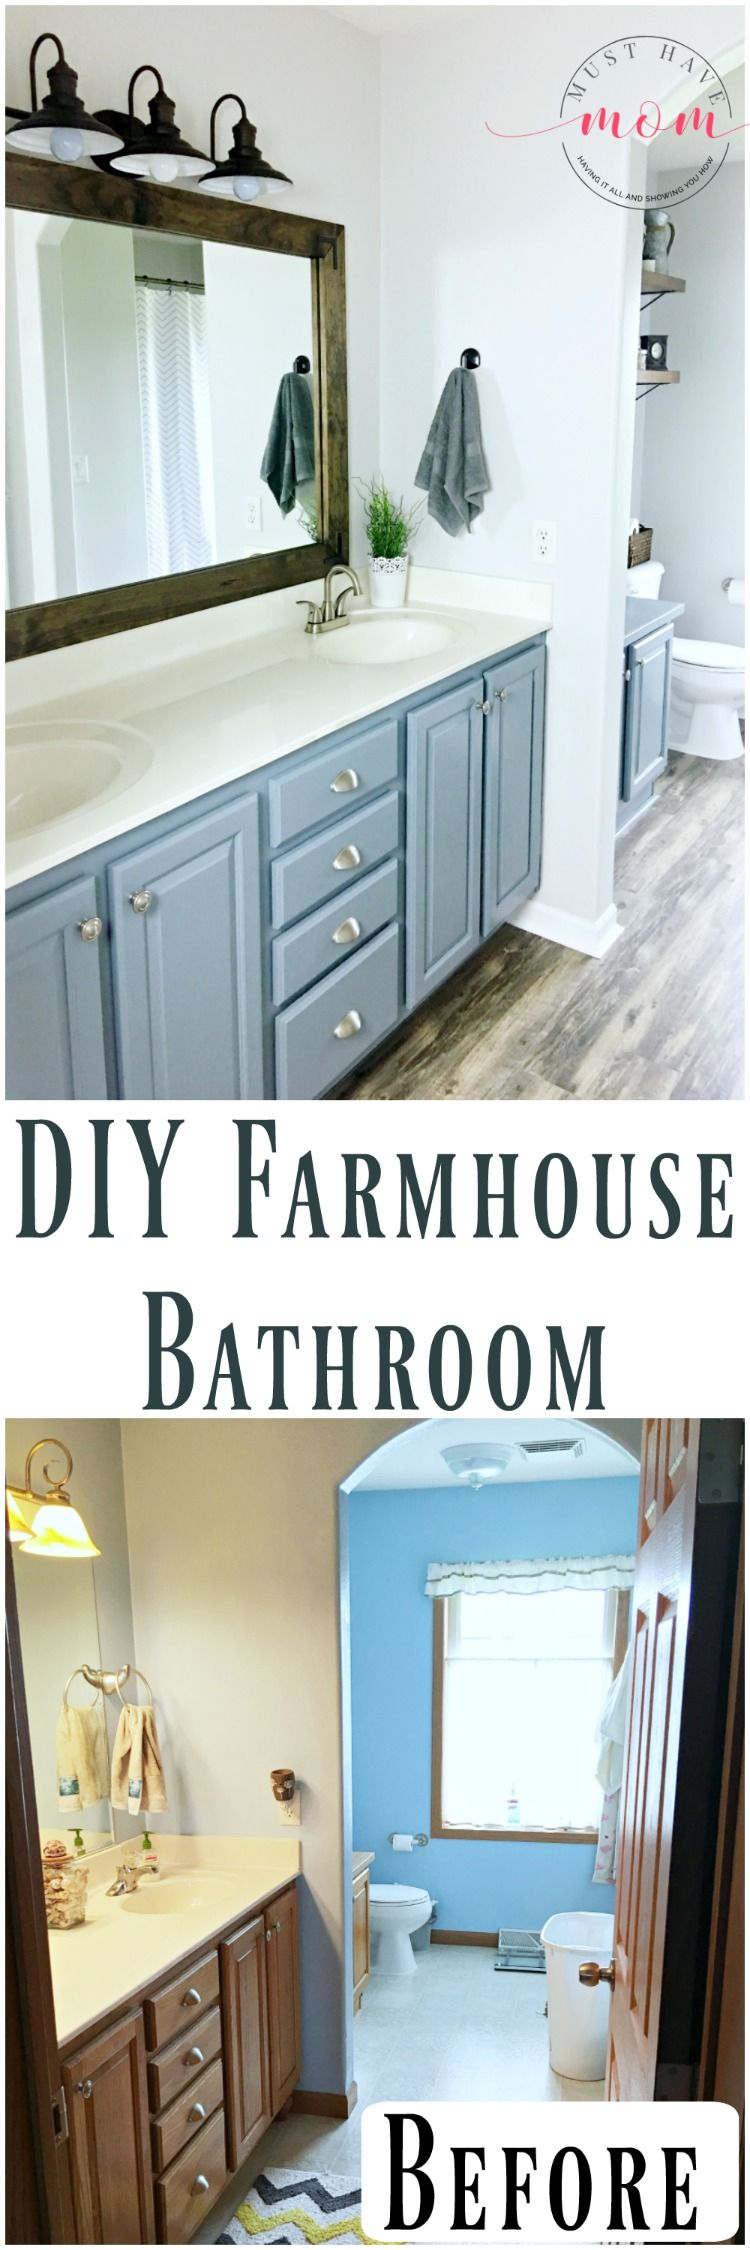 Farmhouse Style Fixer Upper Bathroom On A Budget | Must Have Mom ...